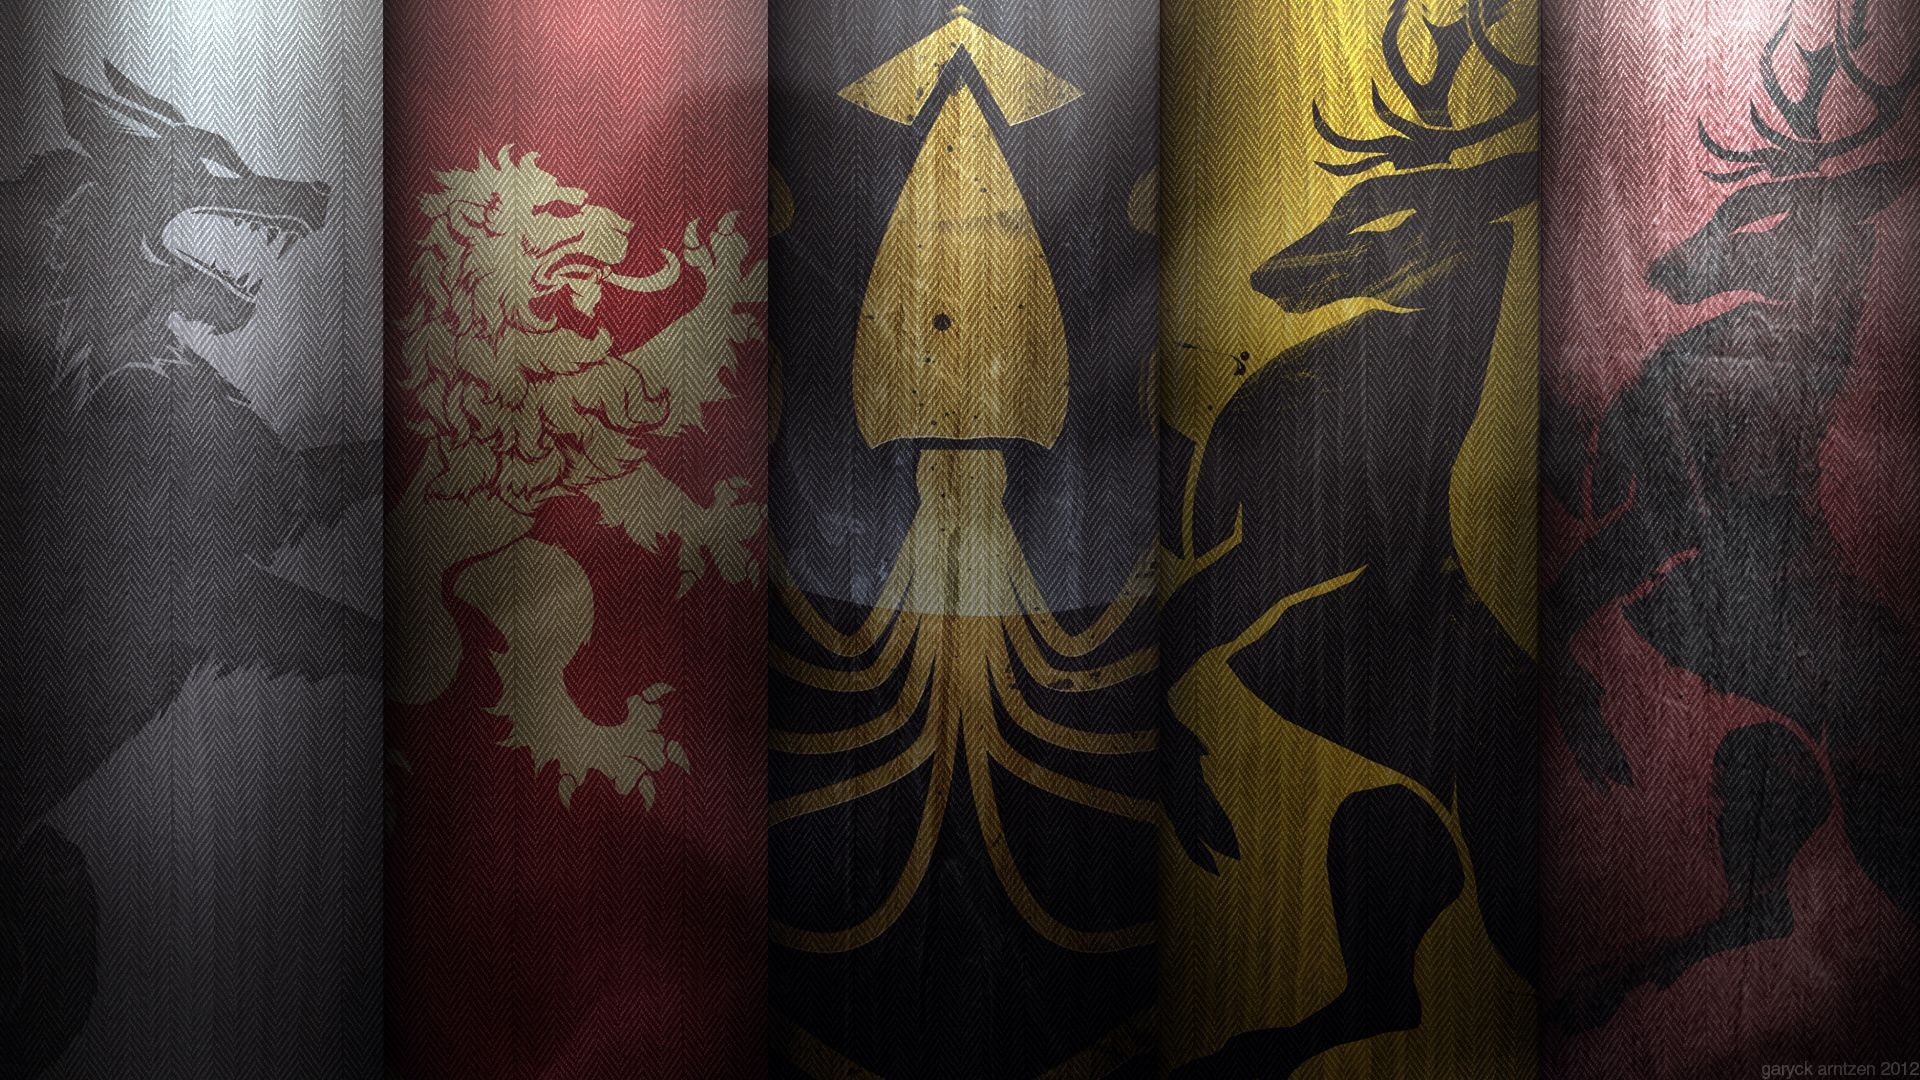 Game of Thrones Description Game of Thrones Wallpaper